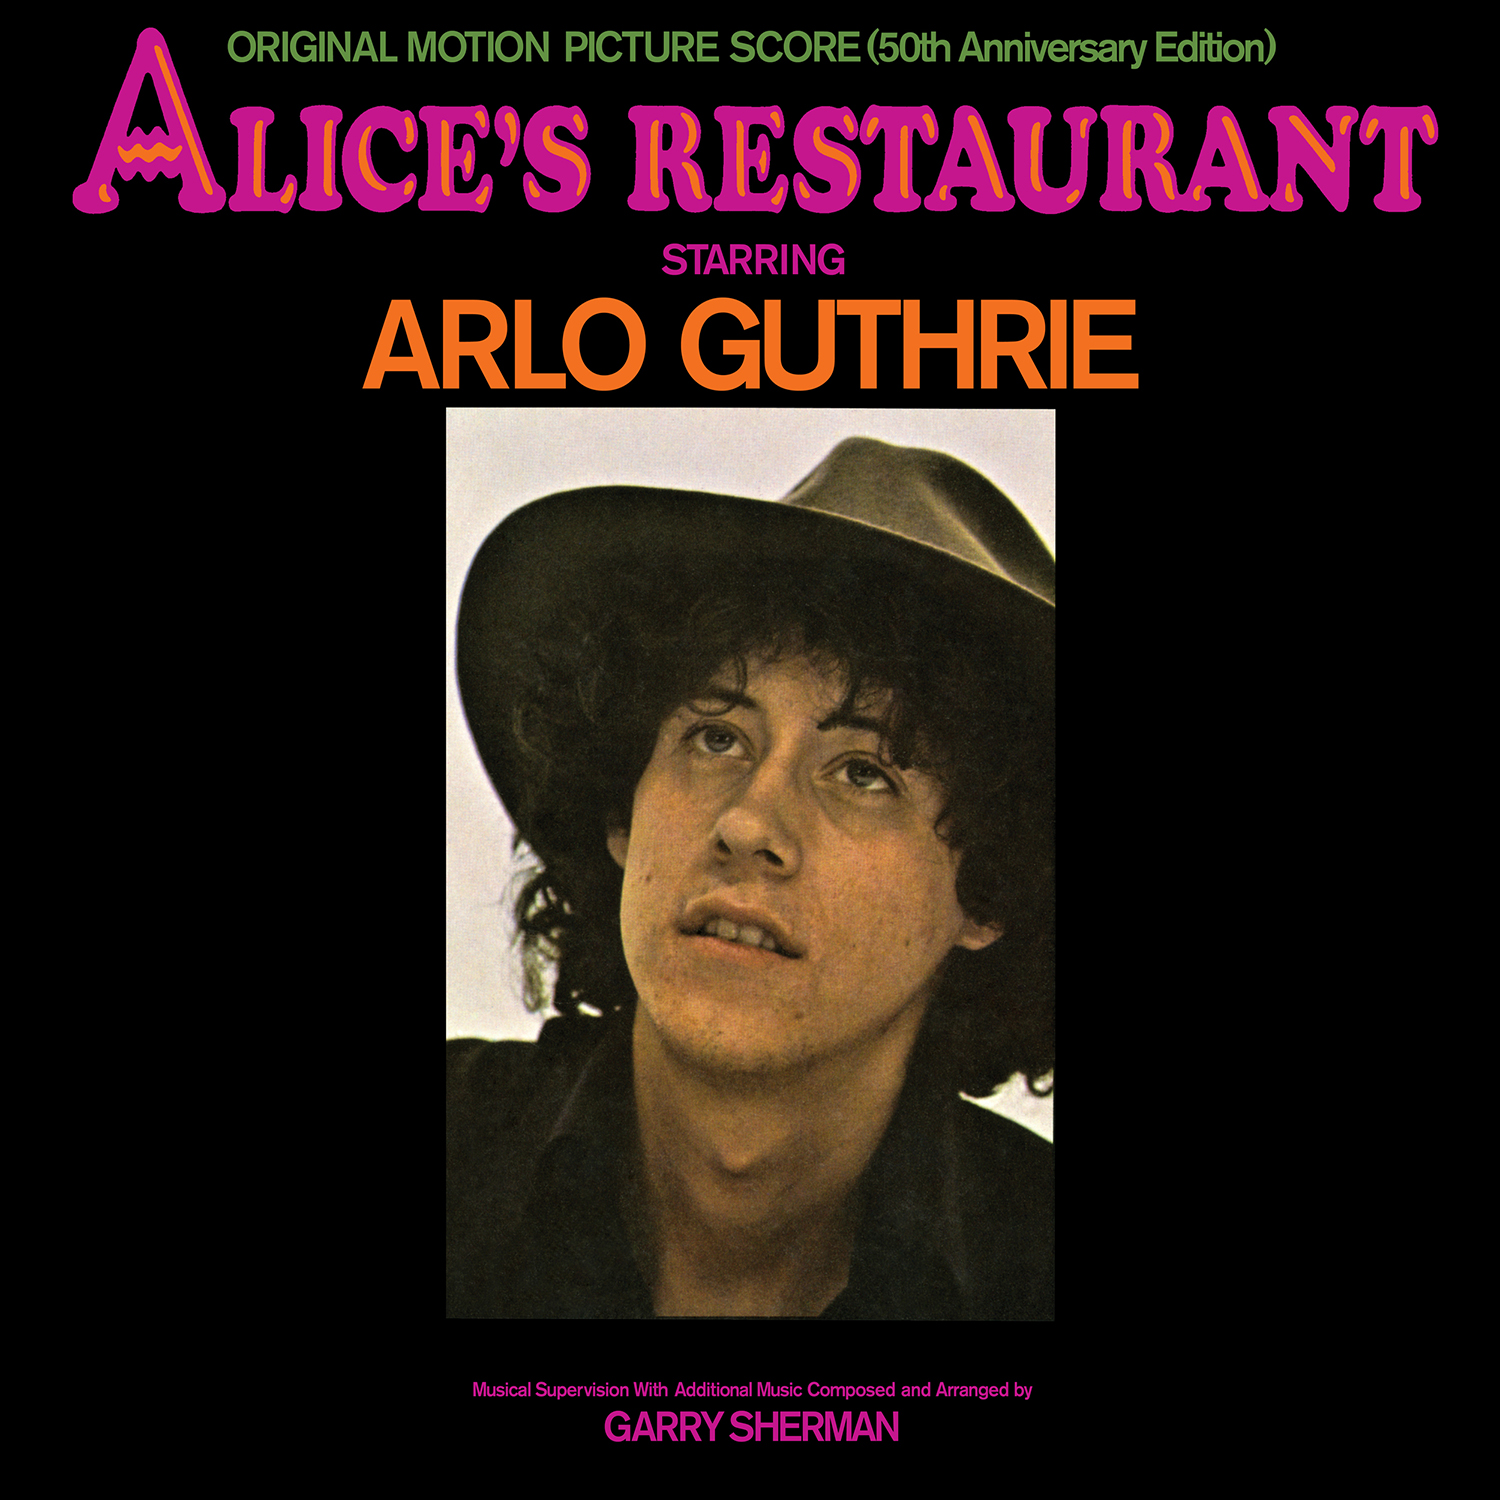 Arlo Guthrie - Alice's Restaurant: Original MGM Motion Picture Soundtrack (50th Anniversary Edition)  Release Date: August 23, 2019 Label: Omnivore Recordings  SERVICE: Mastering, Restoration NUMBER OF DISCS: 1 GENRE: Folk FORMAT: CD